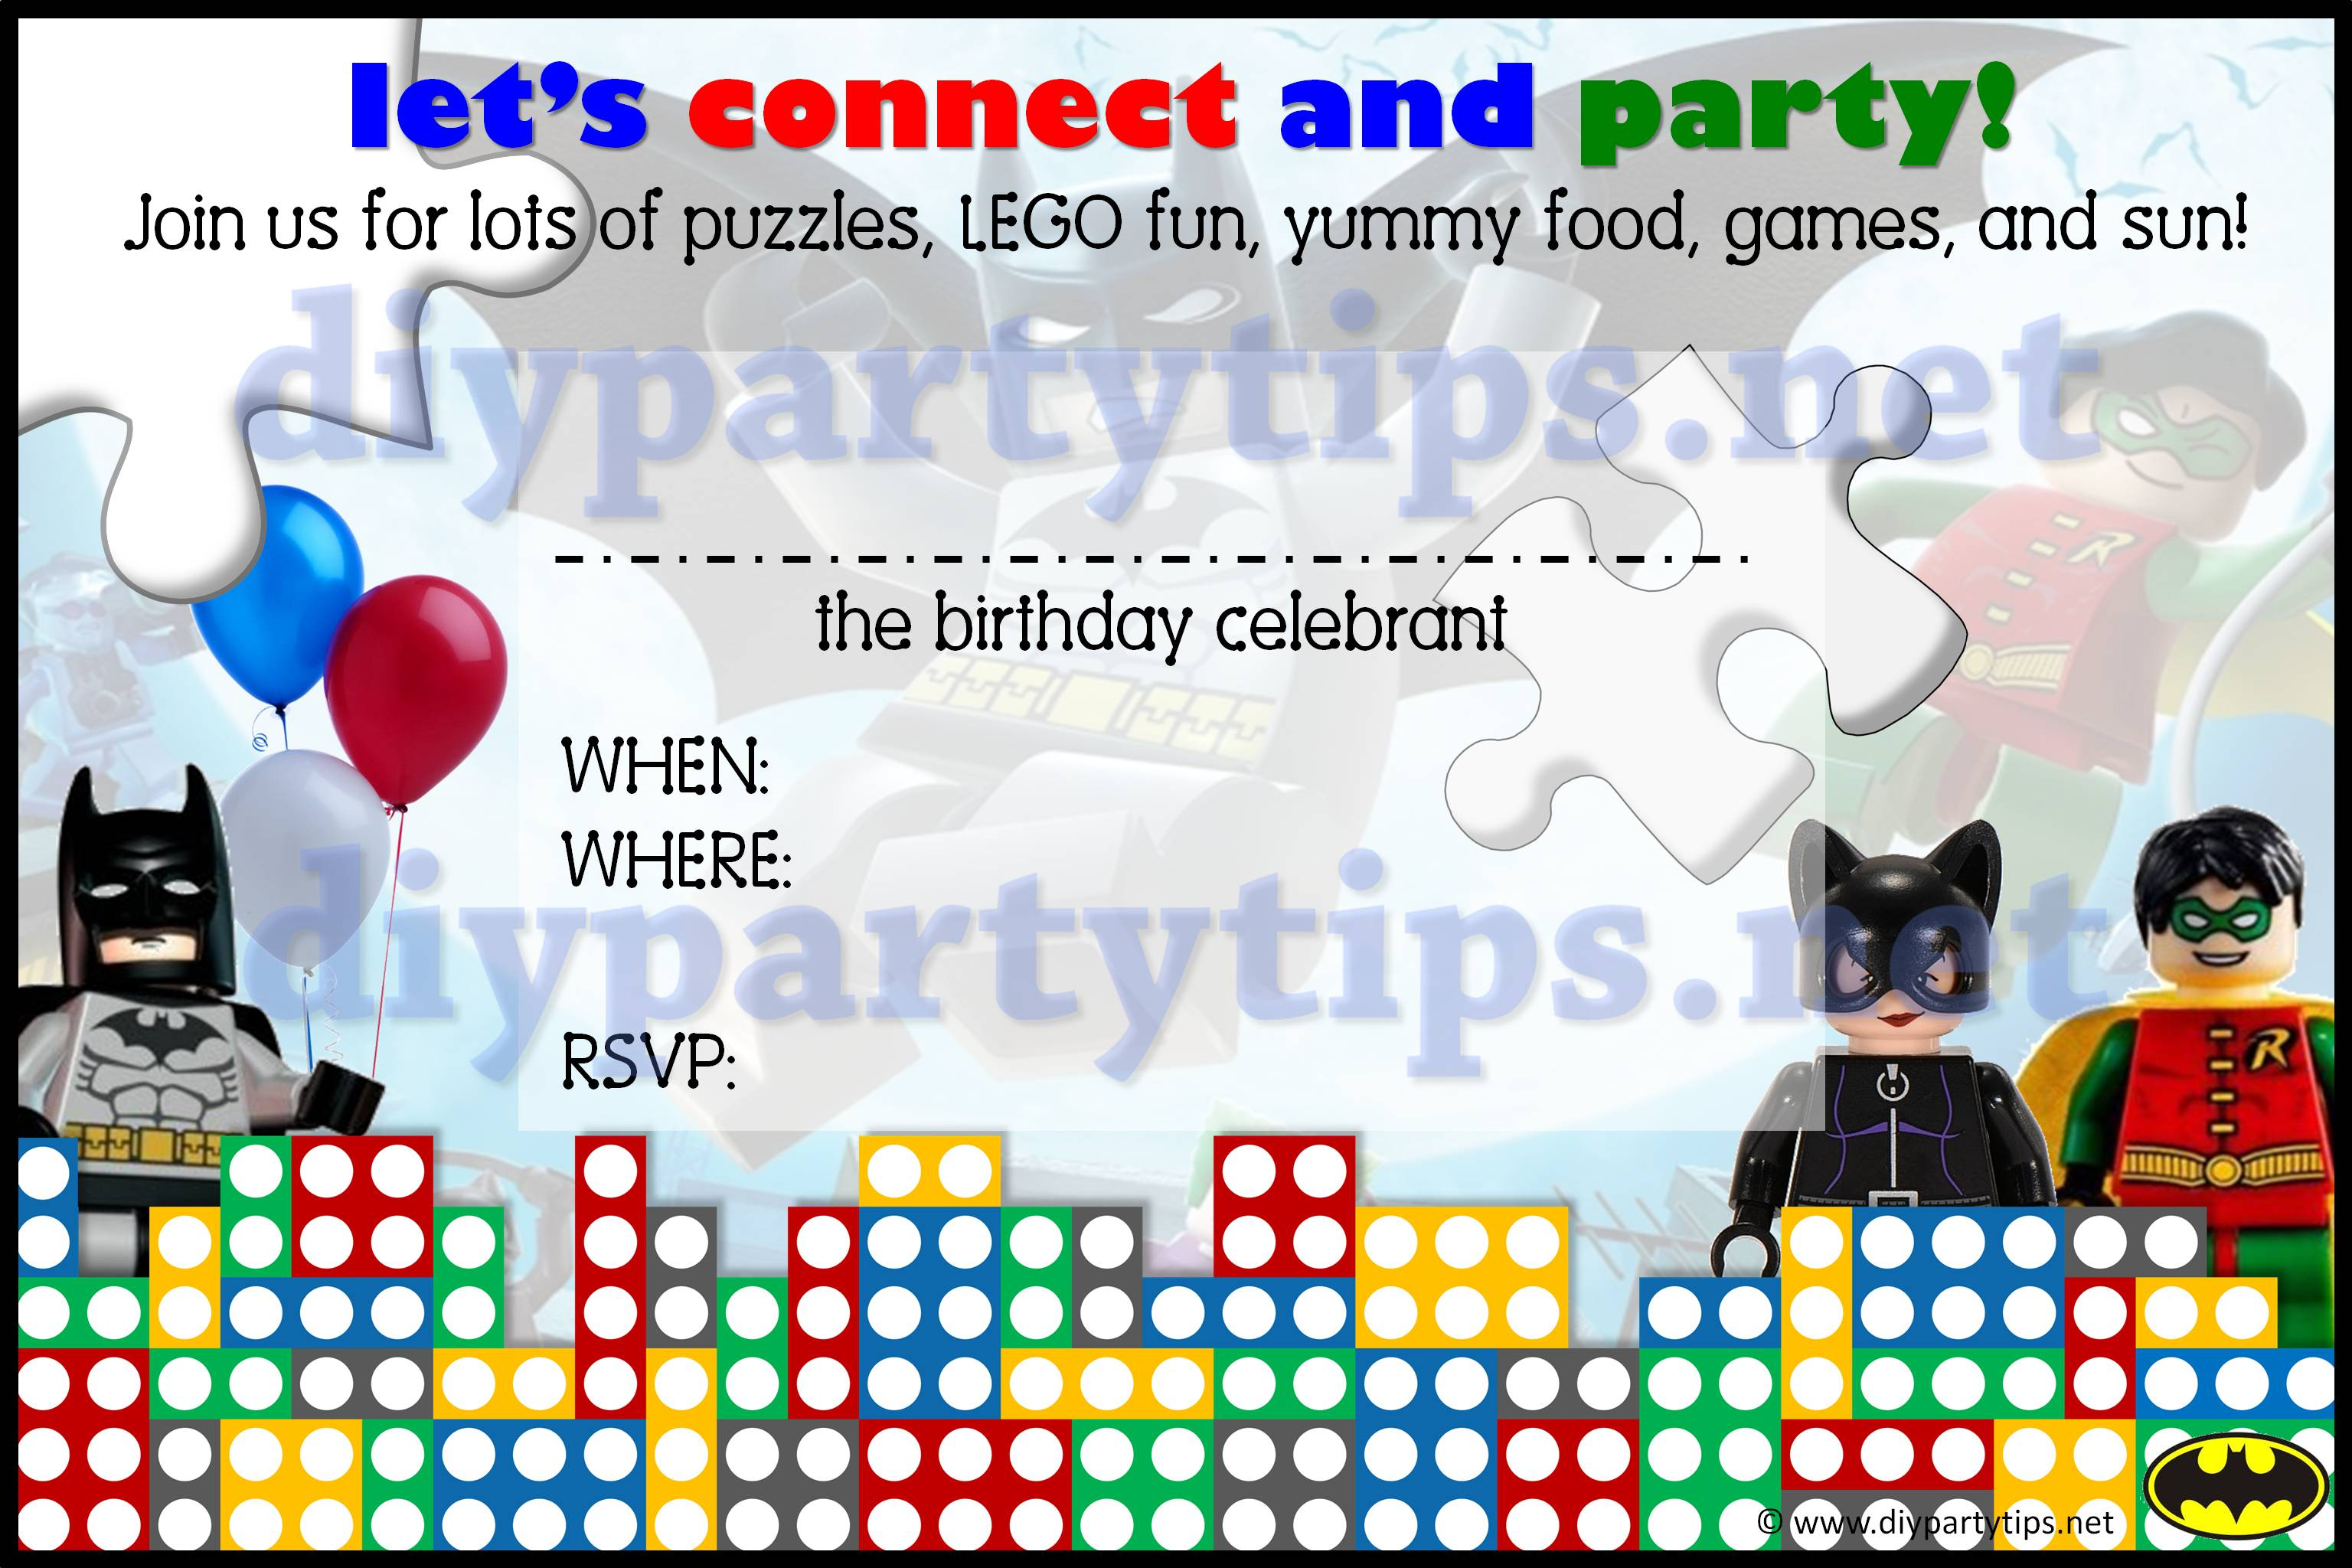 Lego Birthday Party Invitations gangcraftnet – Where Can I Print Birthday Invitations